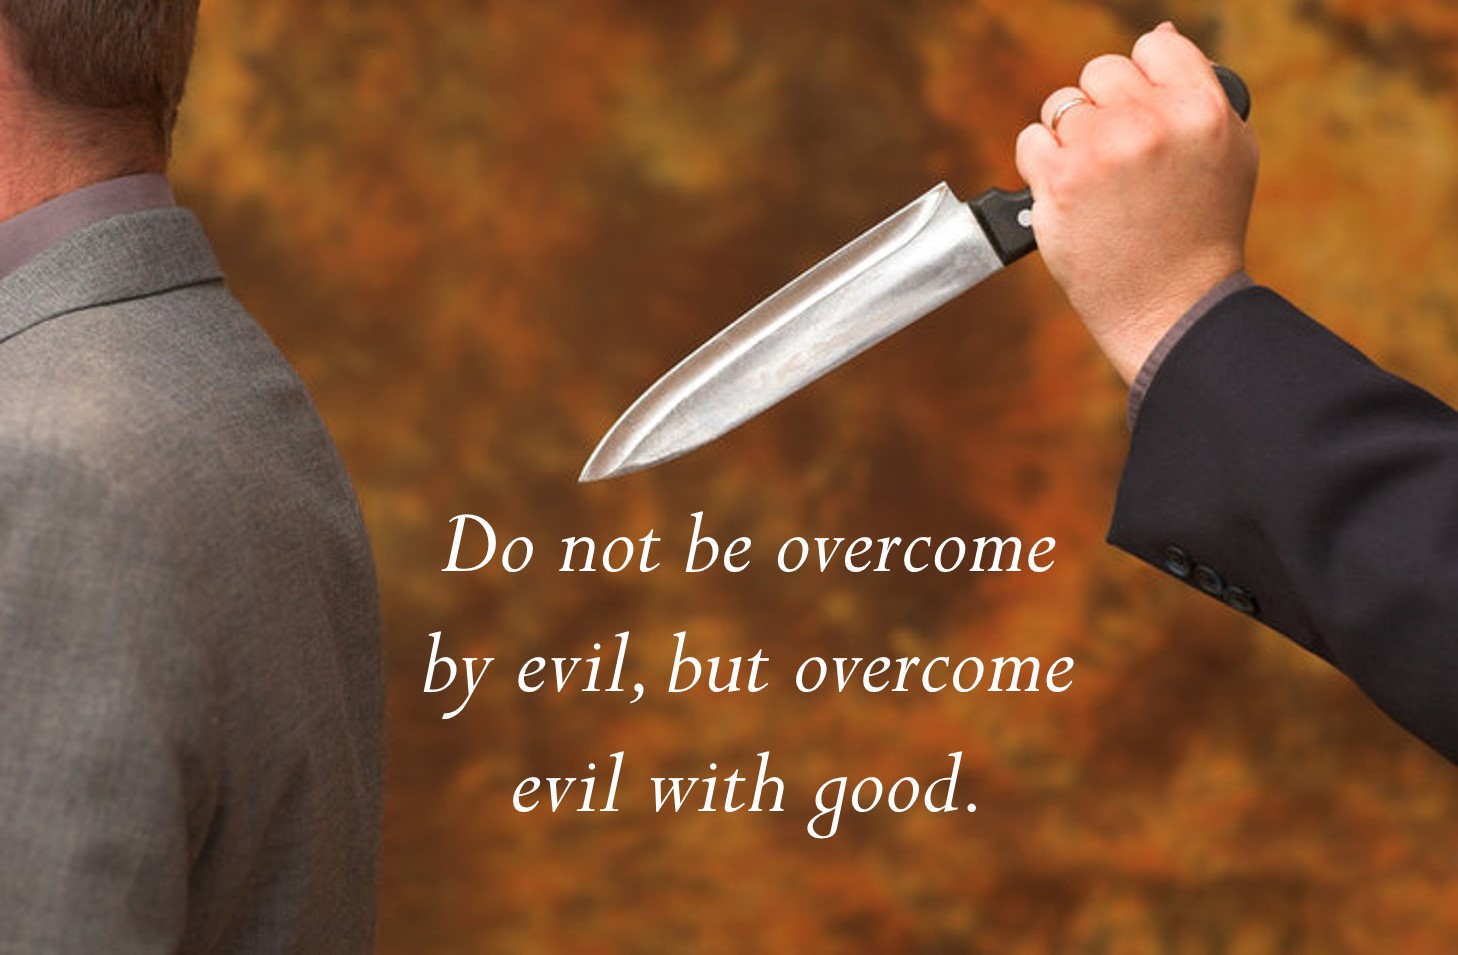 good will overcome evil Find and save ideas about overcome evil with good on pinterest   see more ideas about romans chapter 12, overcome definition and romans 8 21.